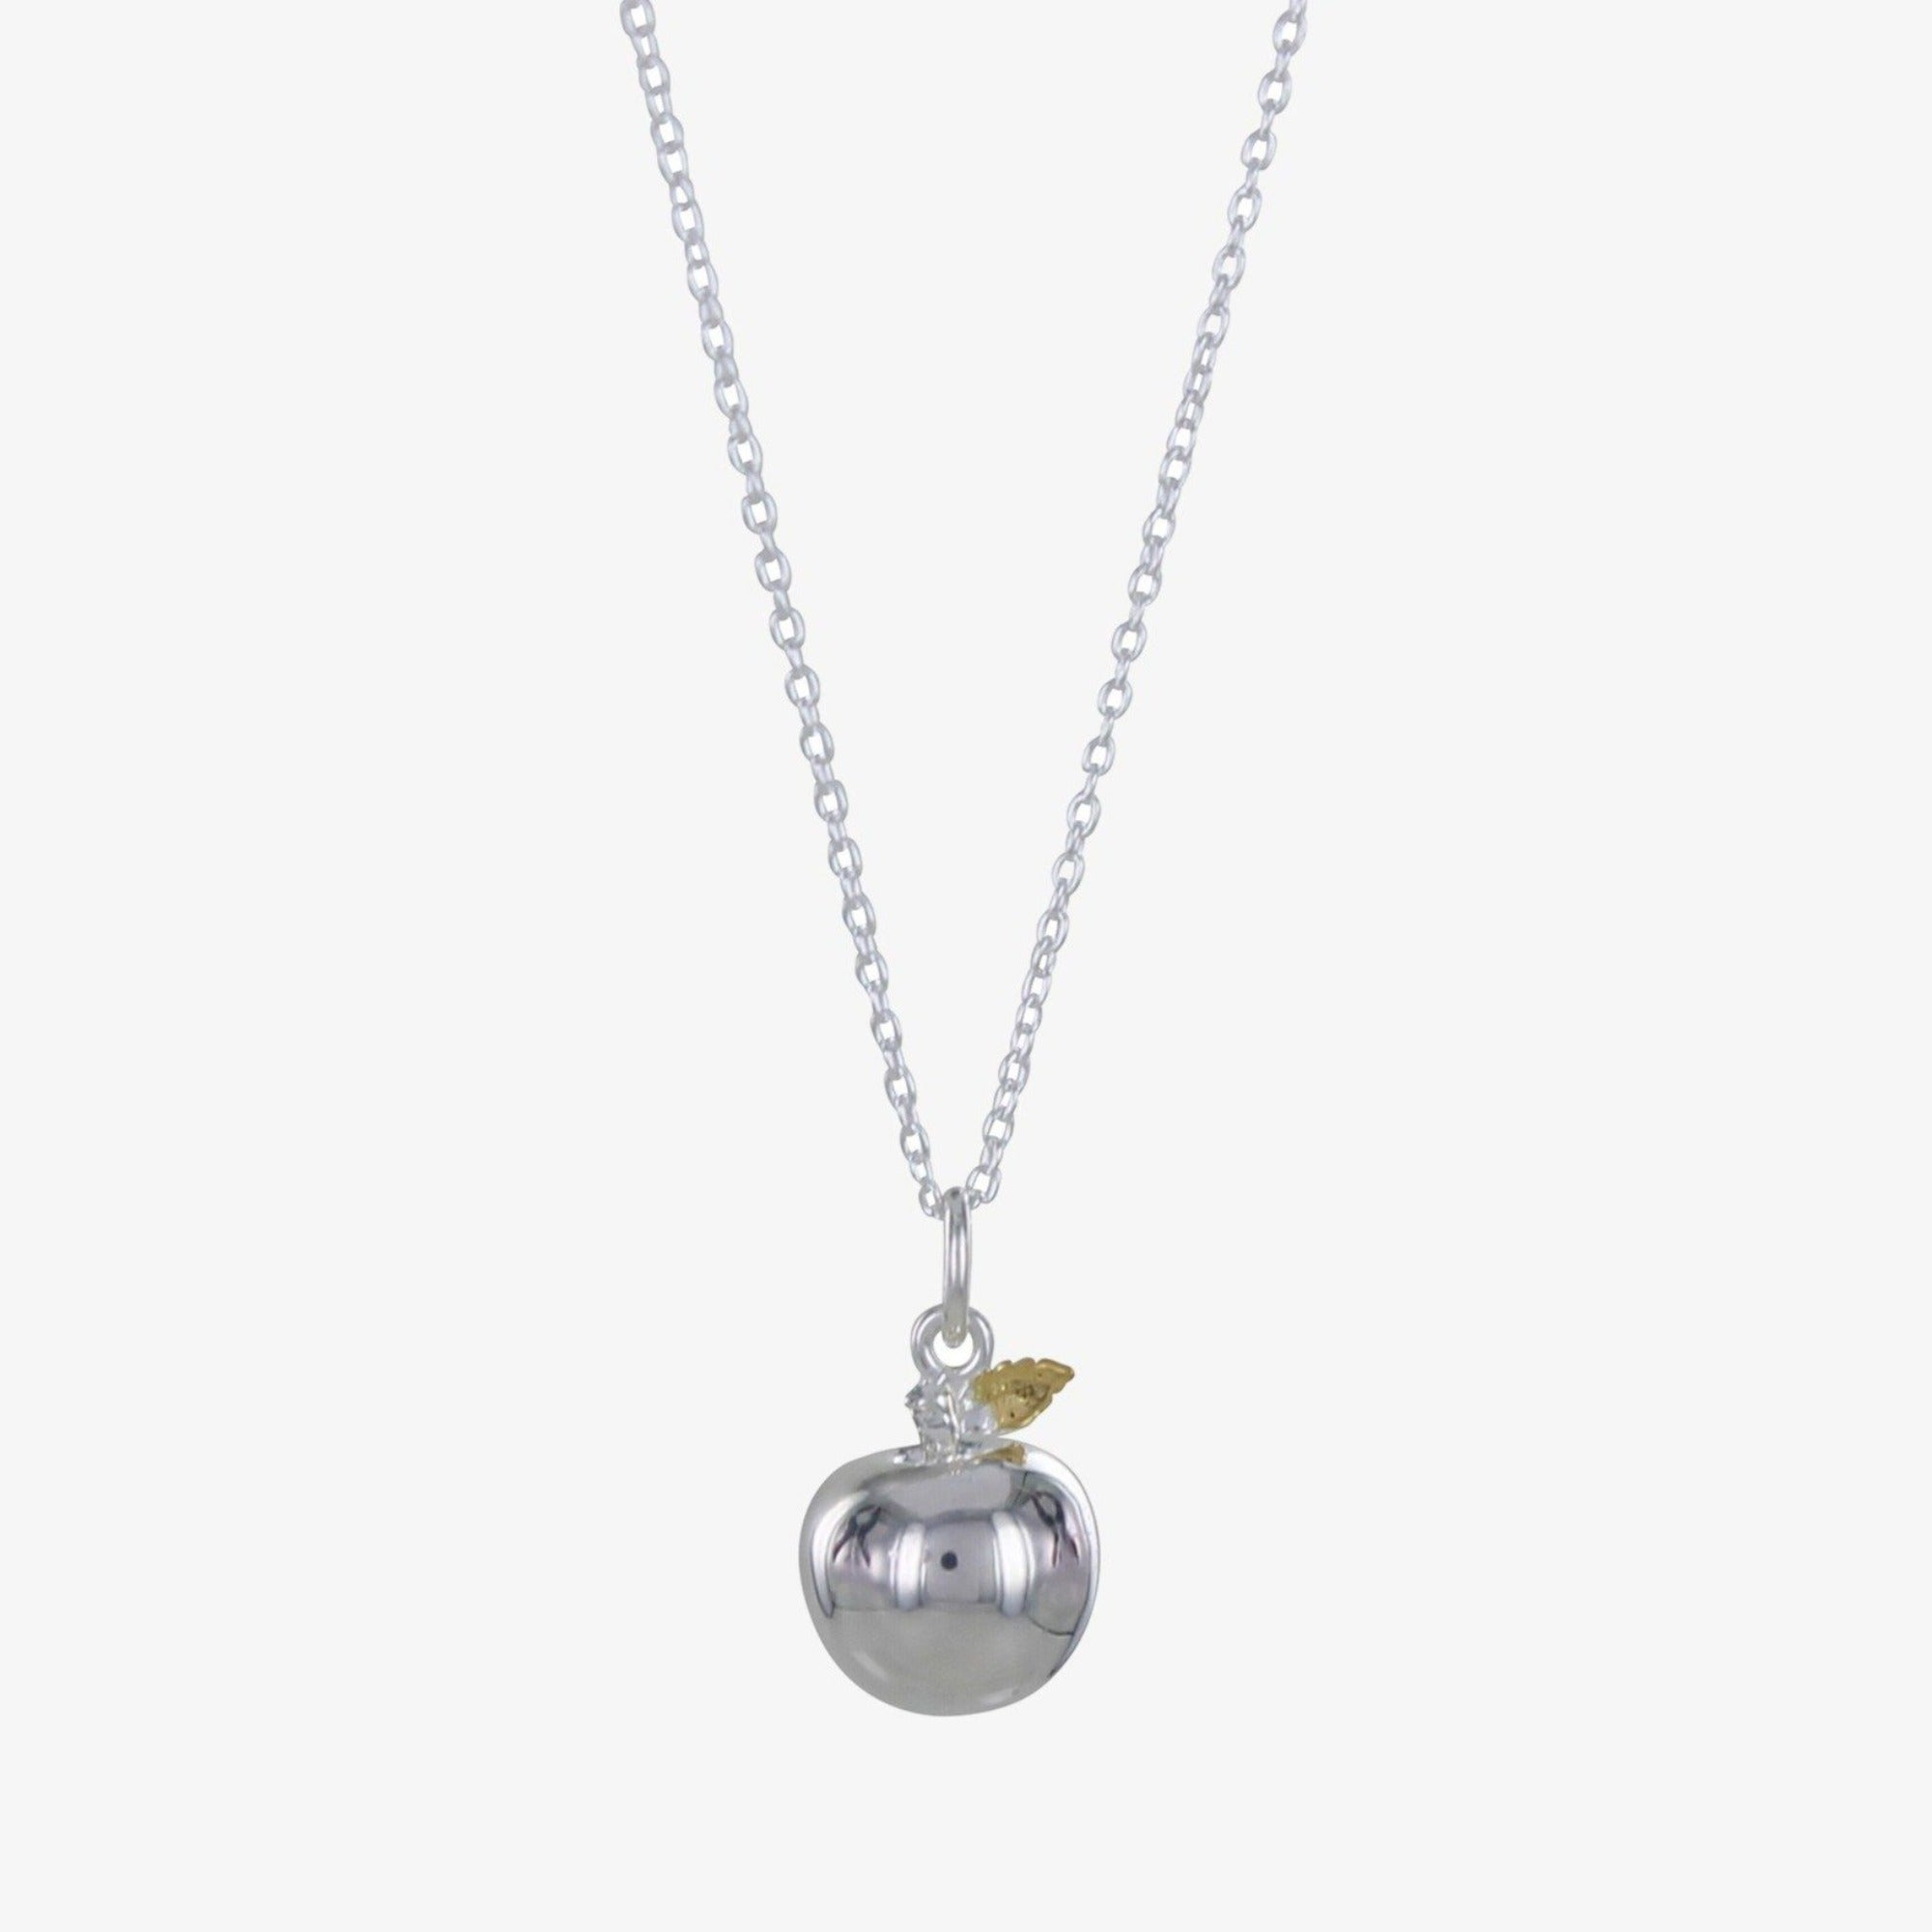 Sterling Silver Apple Charm Necklace